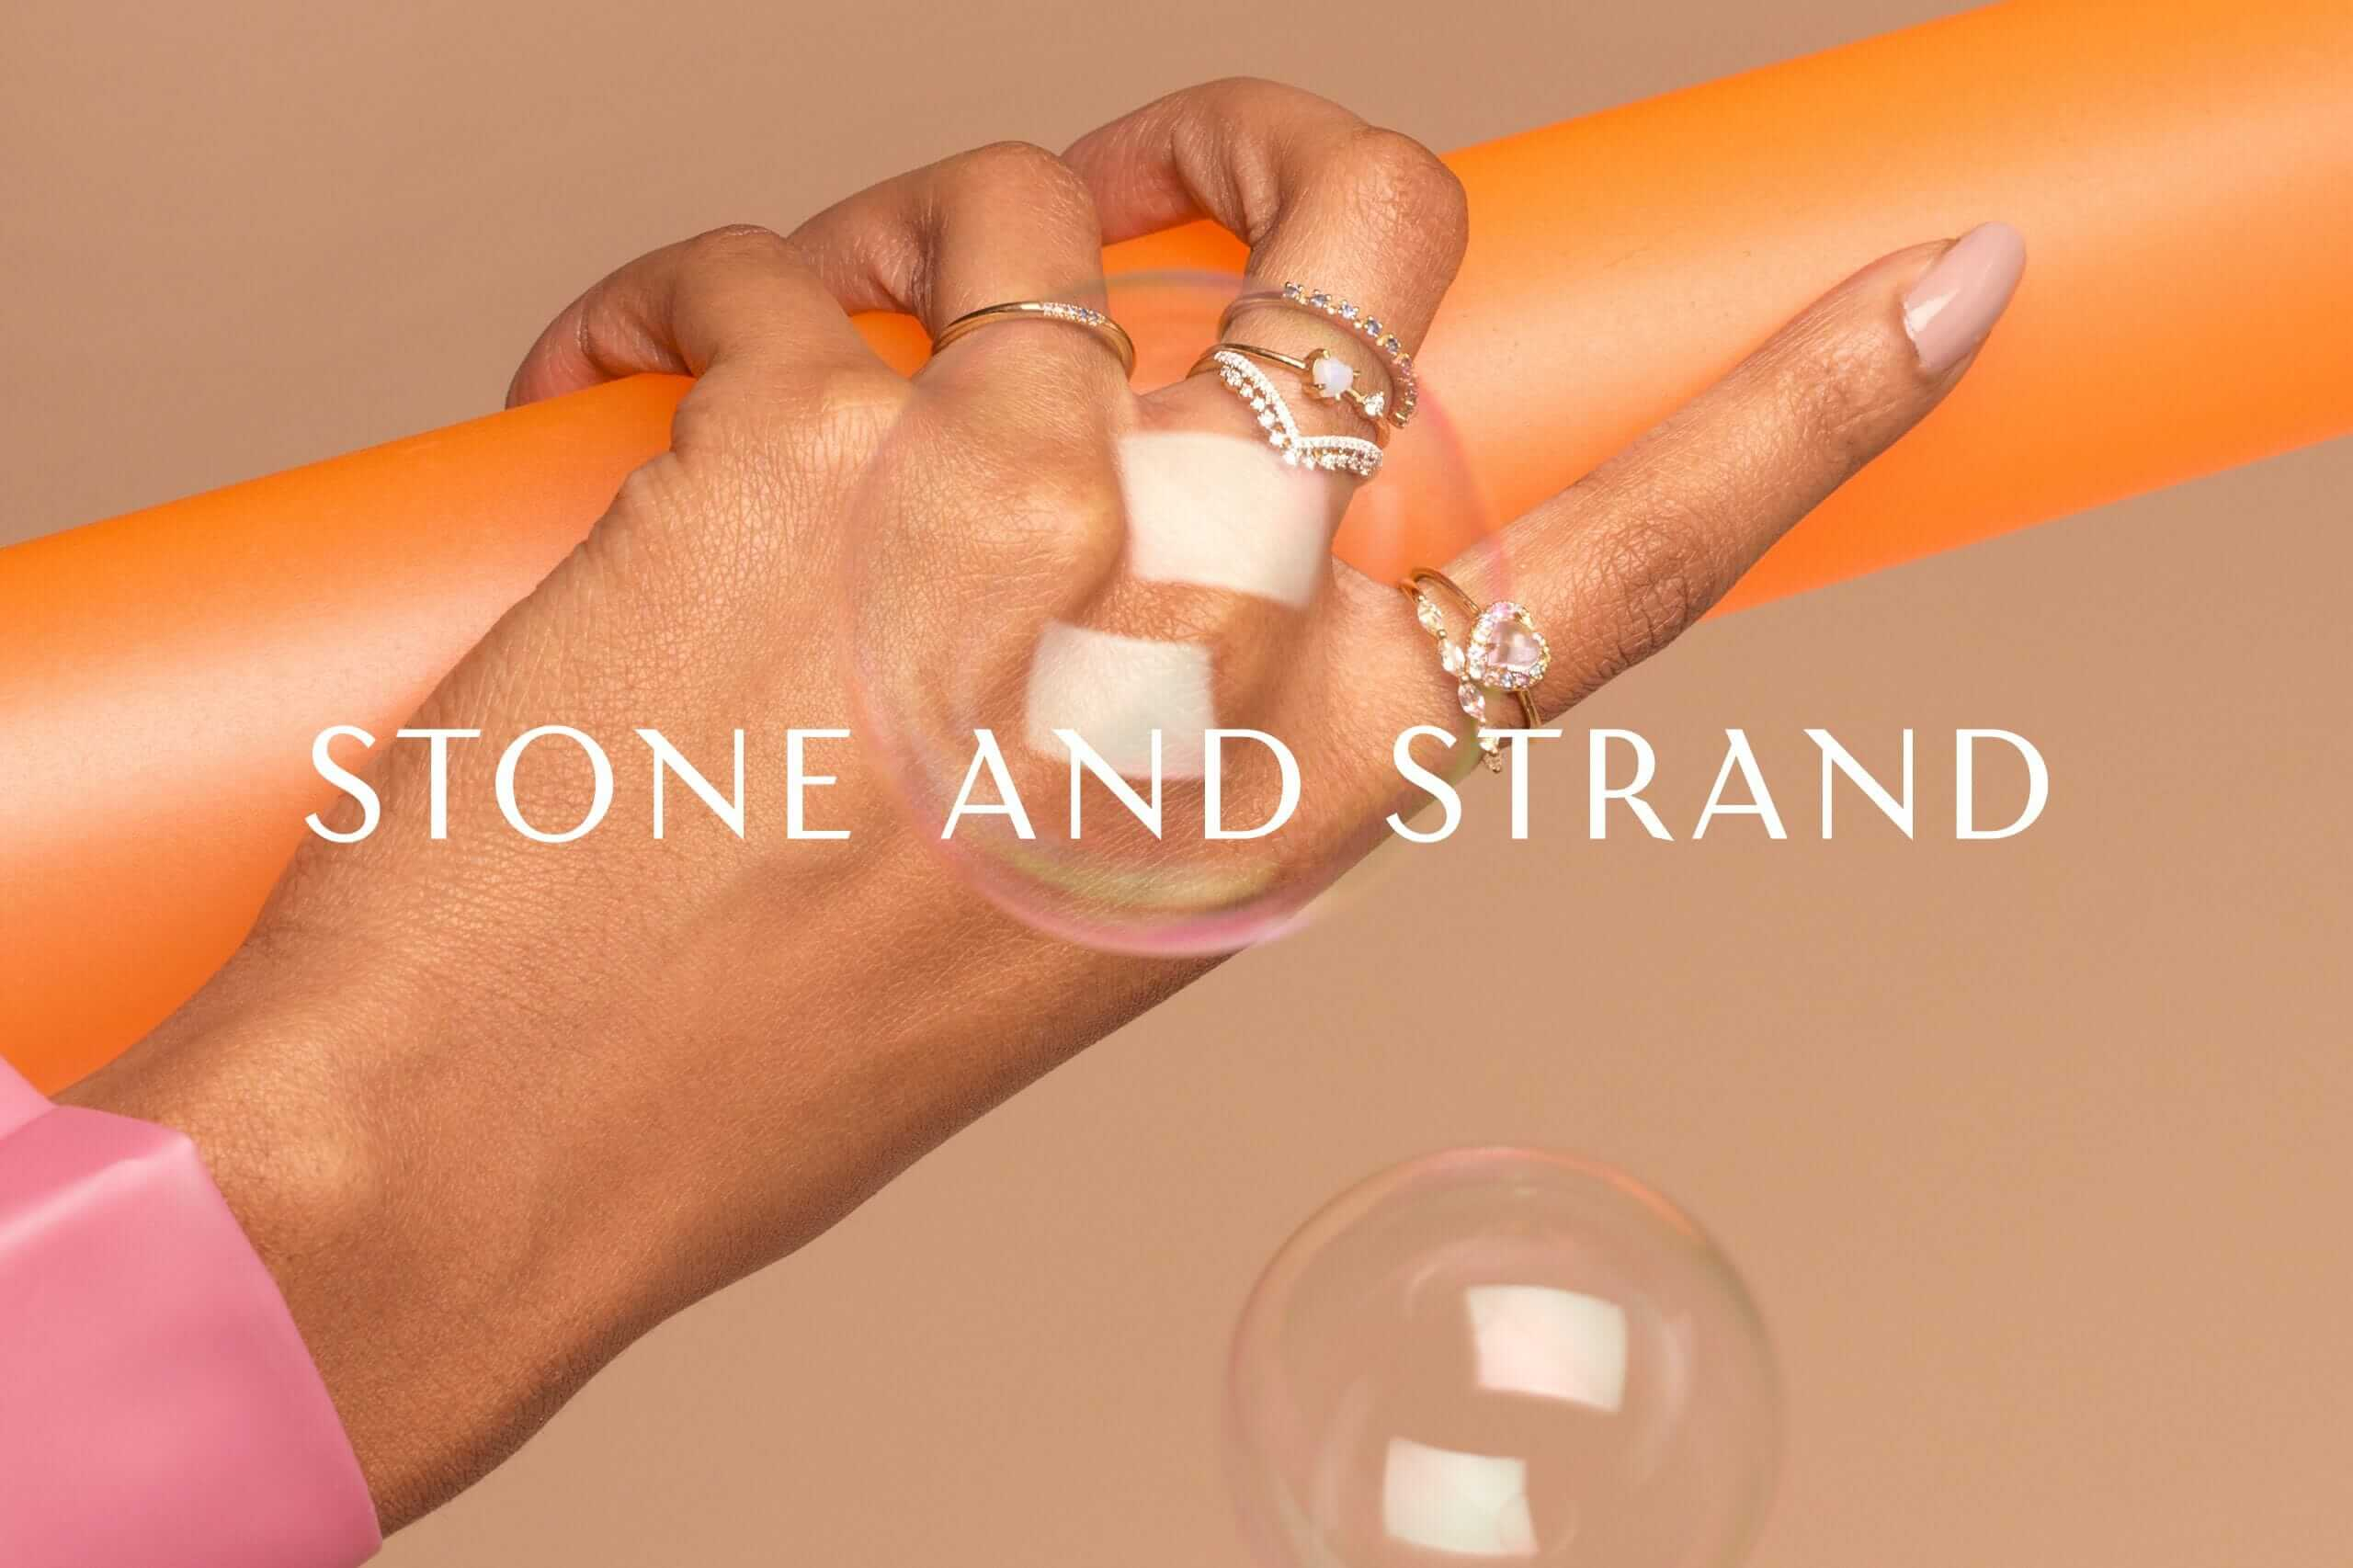 Stone And Strand